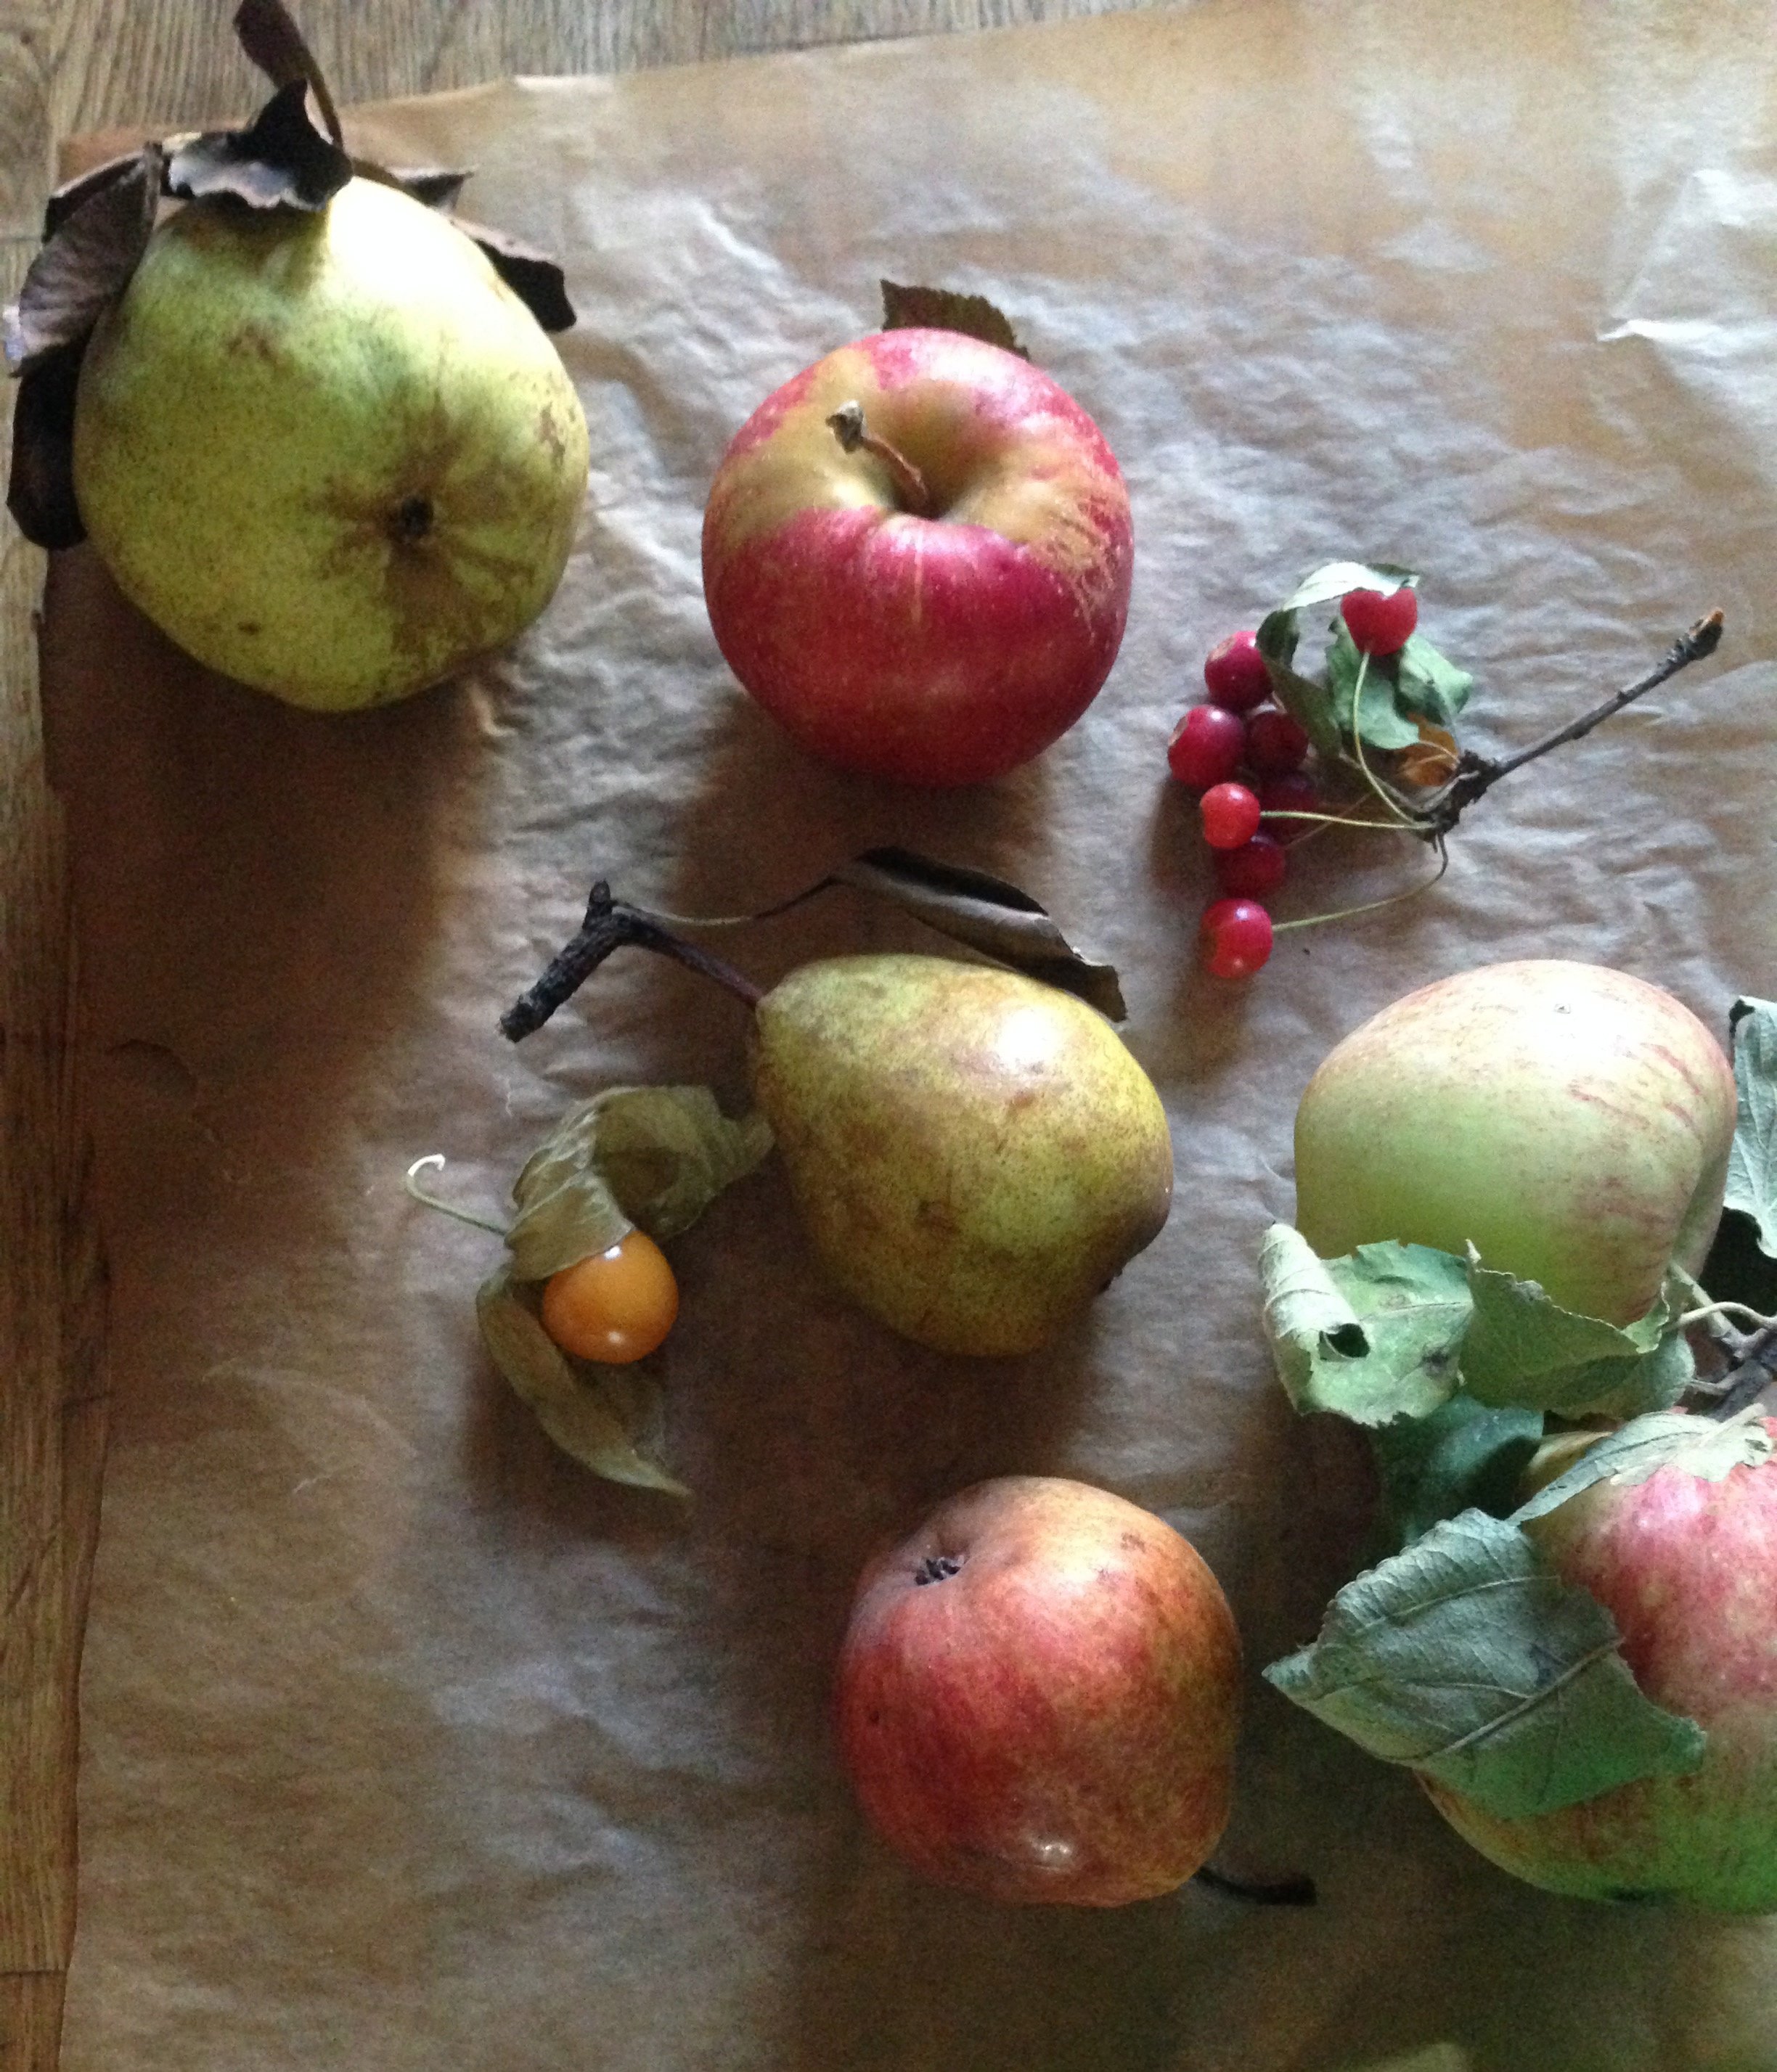 Leftover fruits from recent photo shoots for The Cookbook...